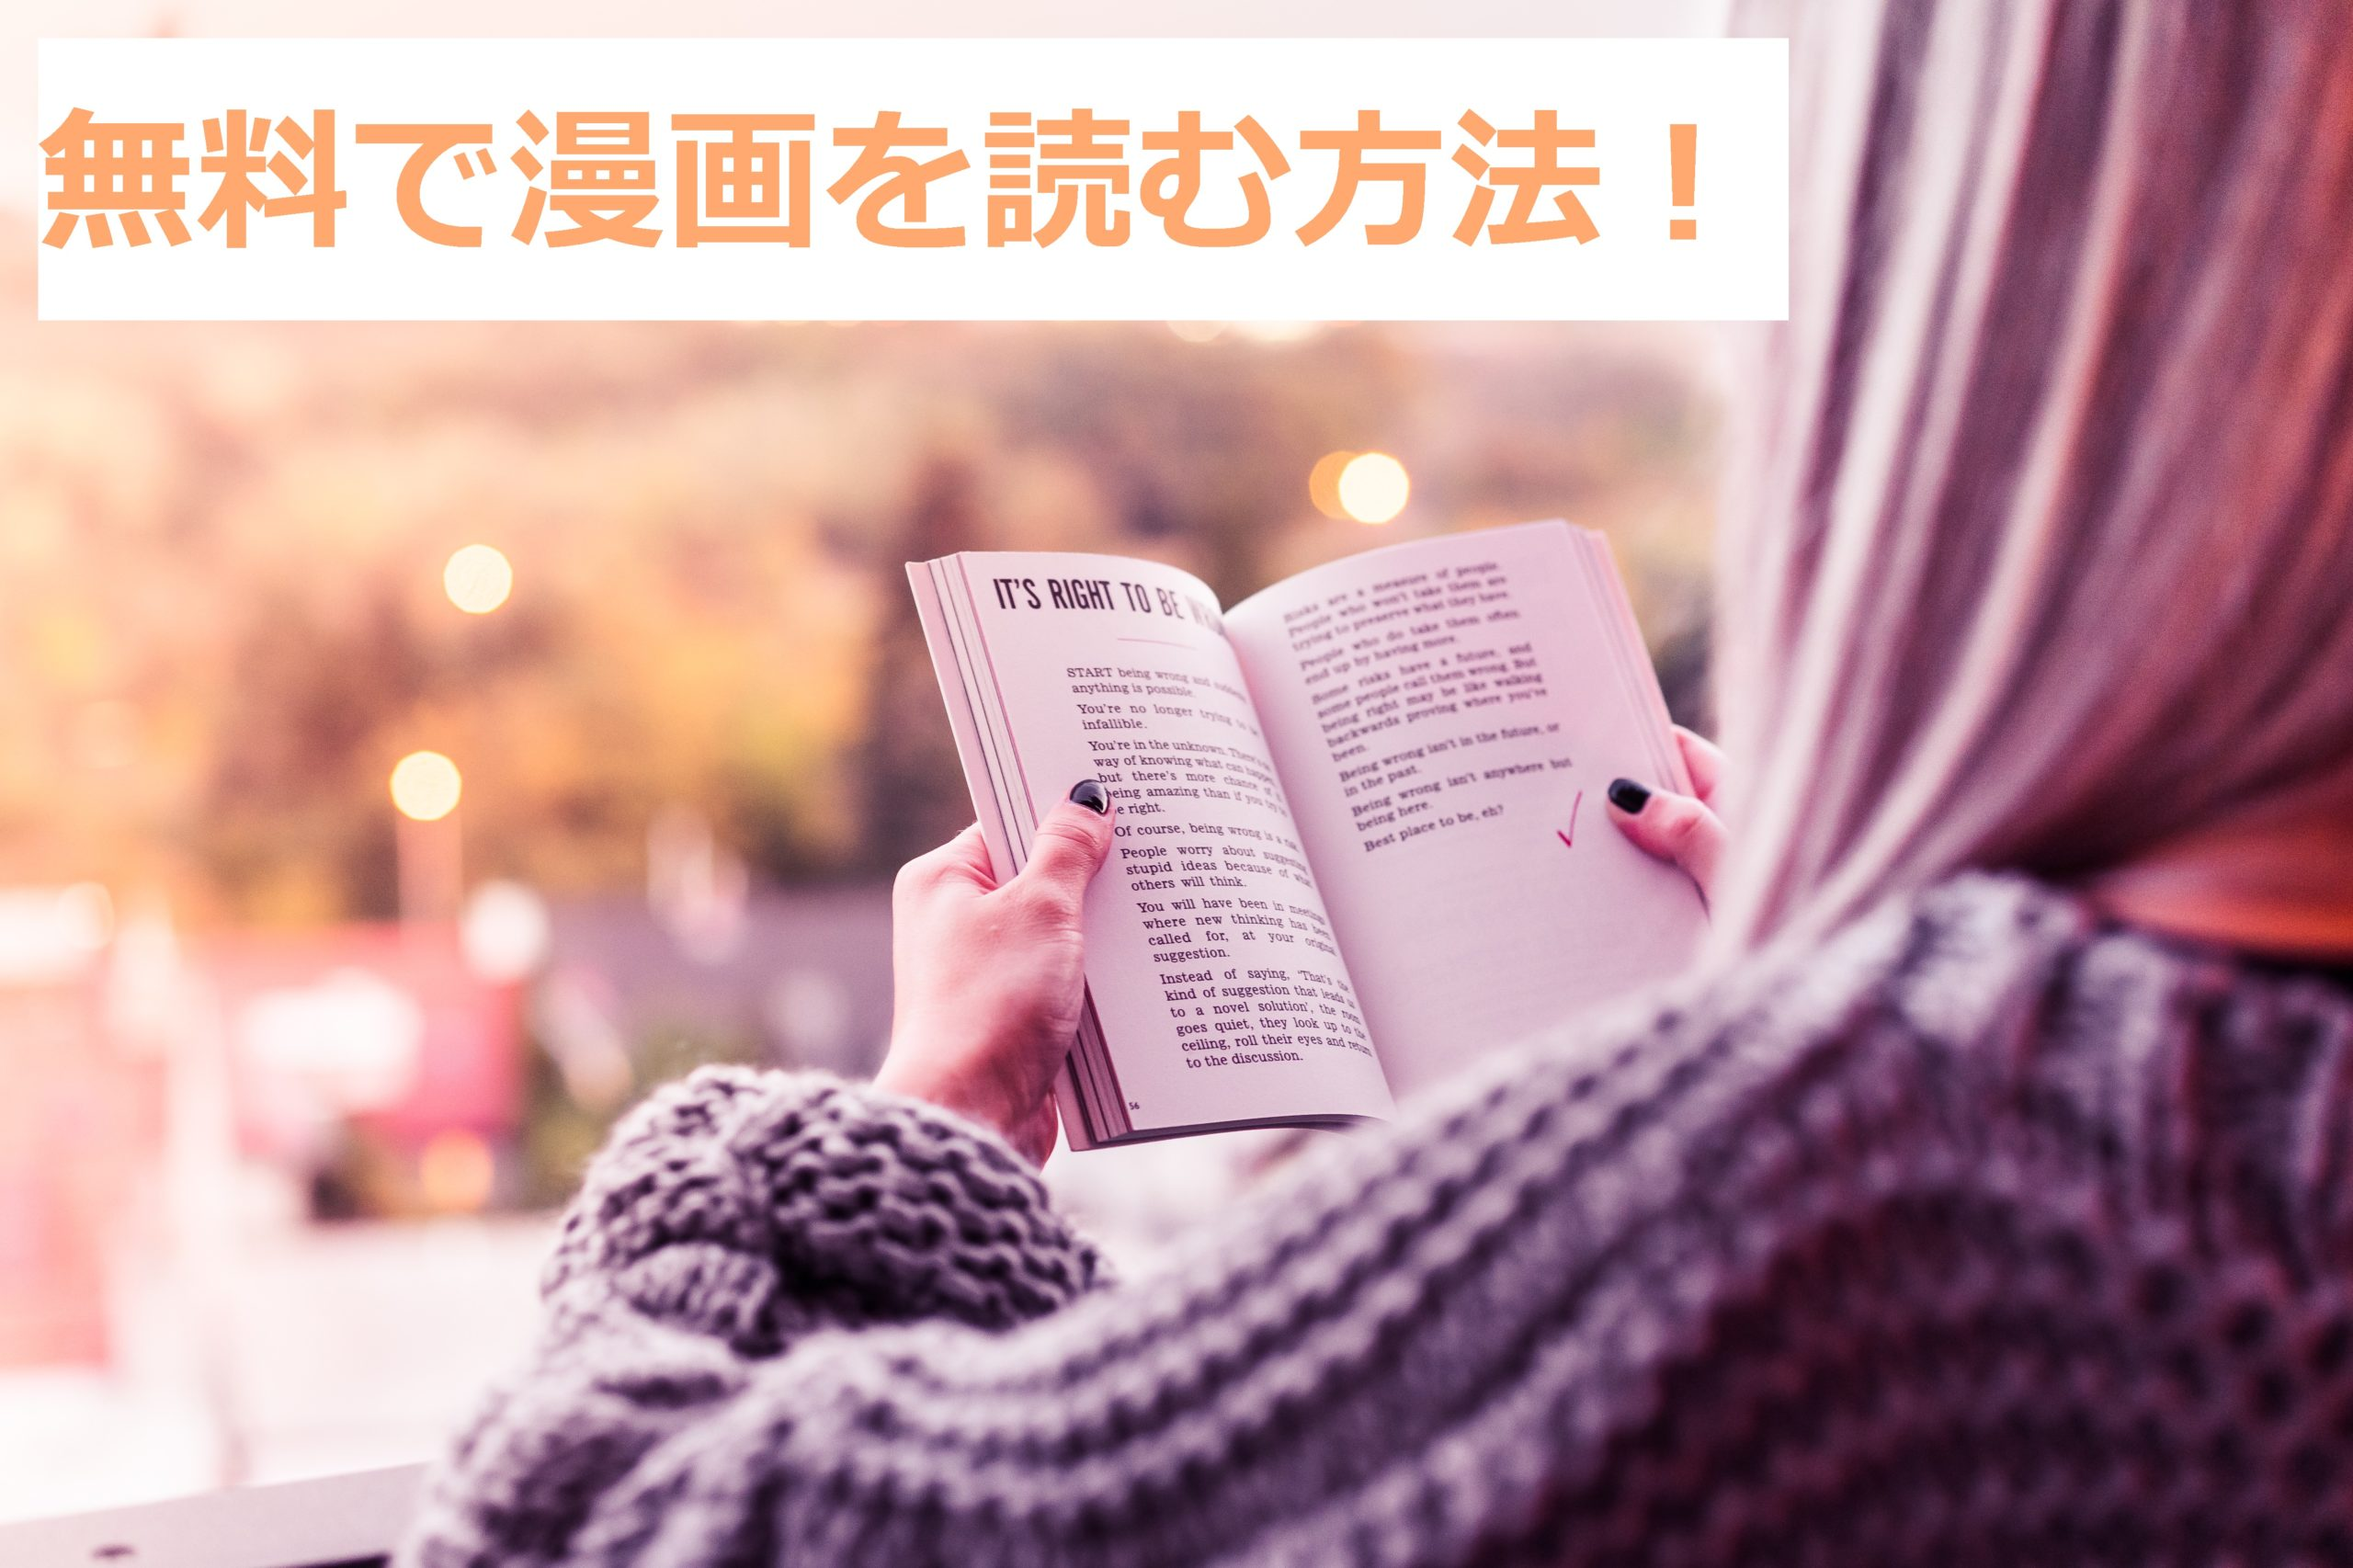 【OUT】を全巻無料で読めるか調査!漫画を安く買う方法も